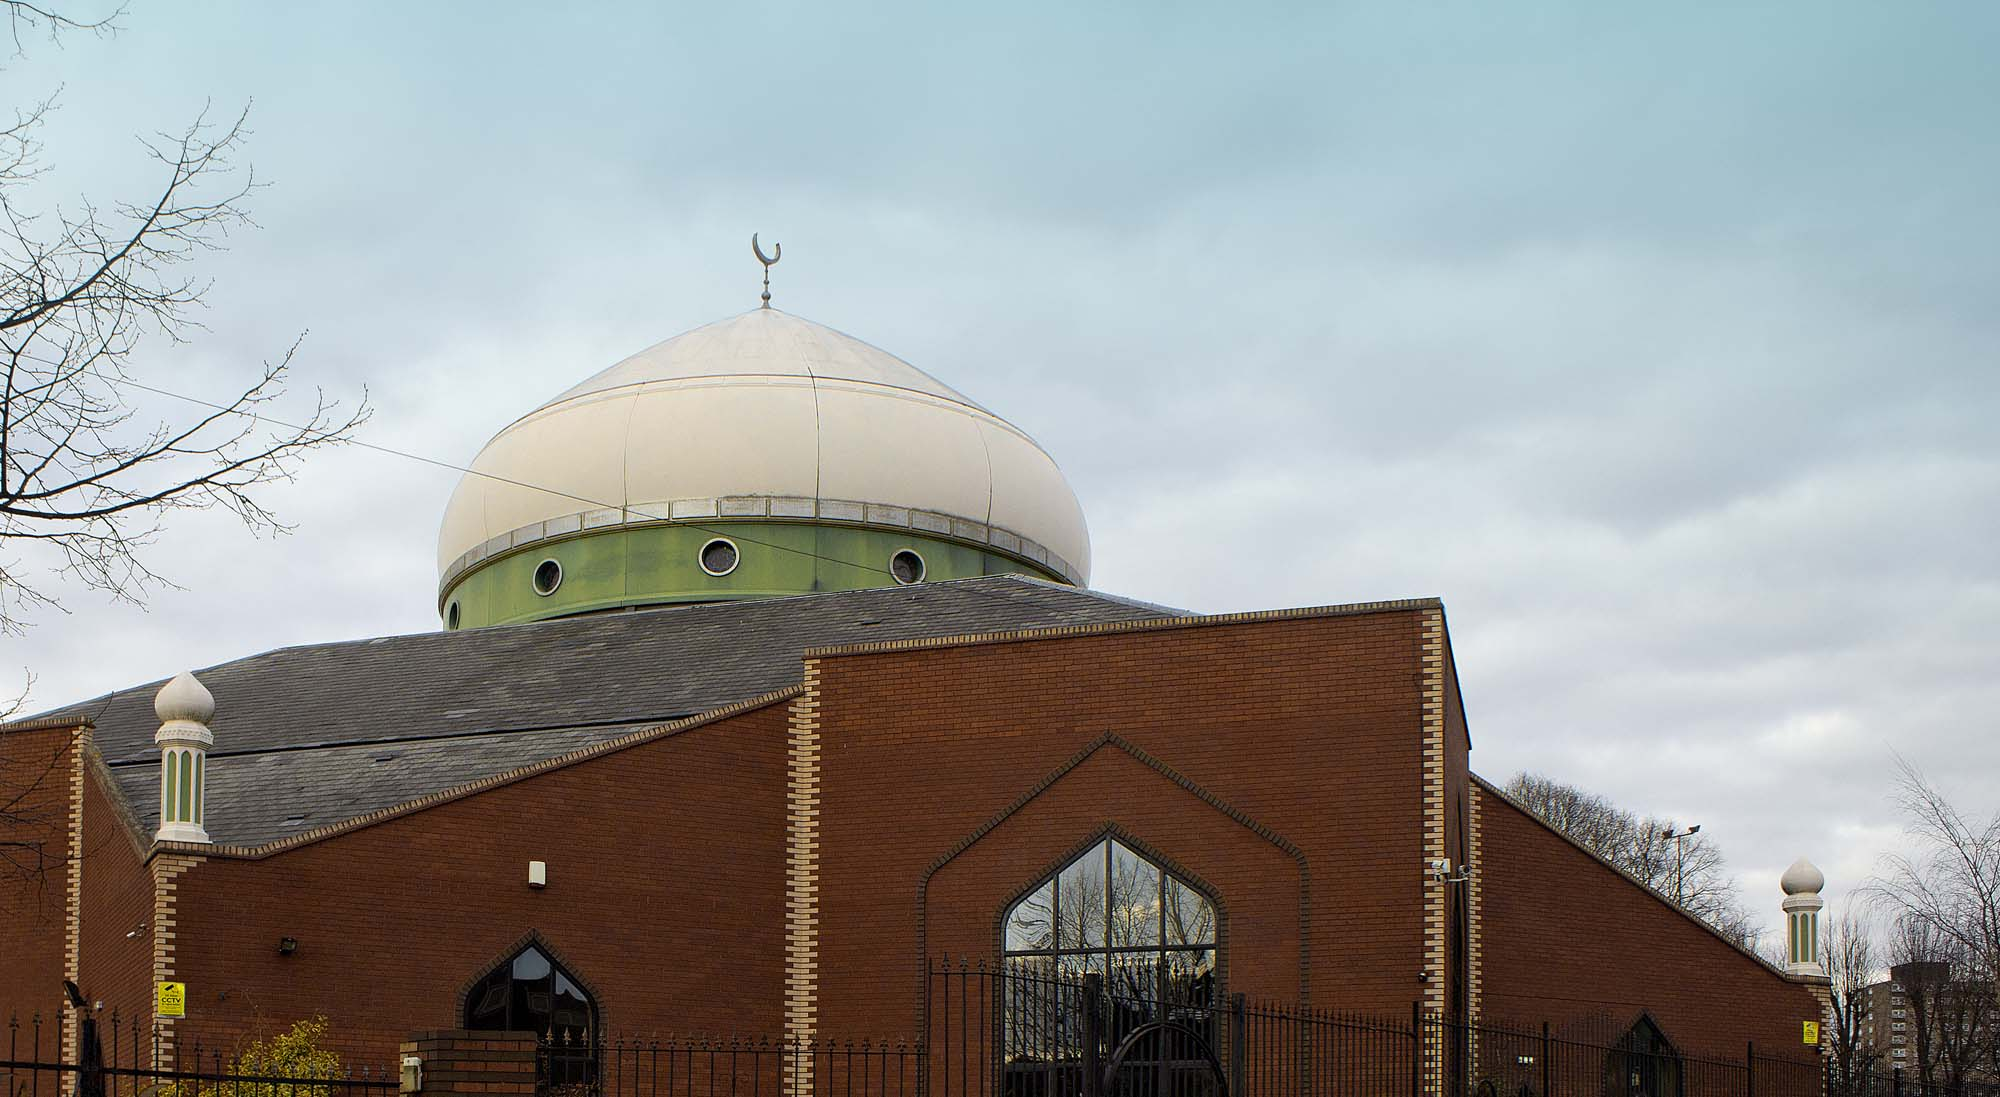 The beautiful dome of the Islamic Centre Leicester. The city is home to a wide variety of places of worship for many faiths -